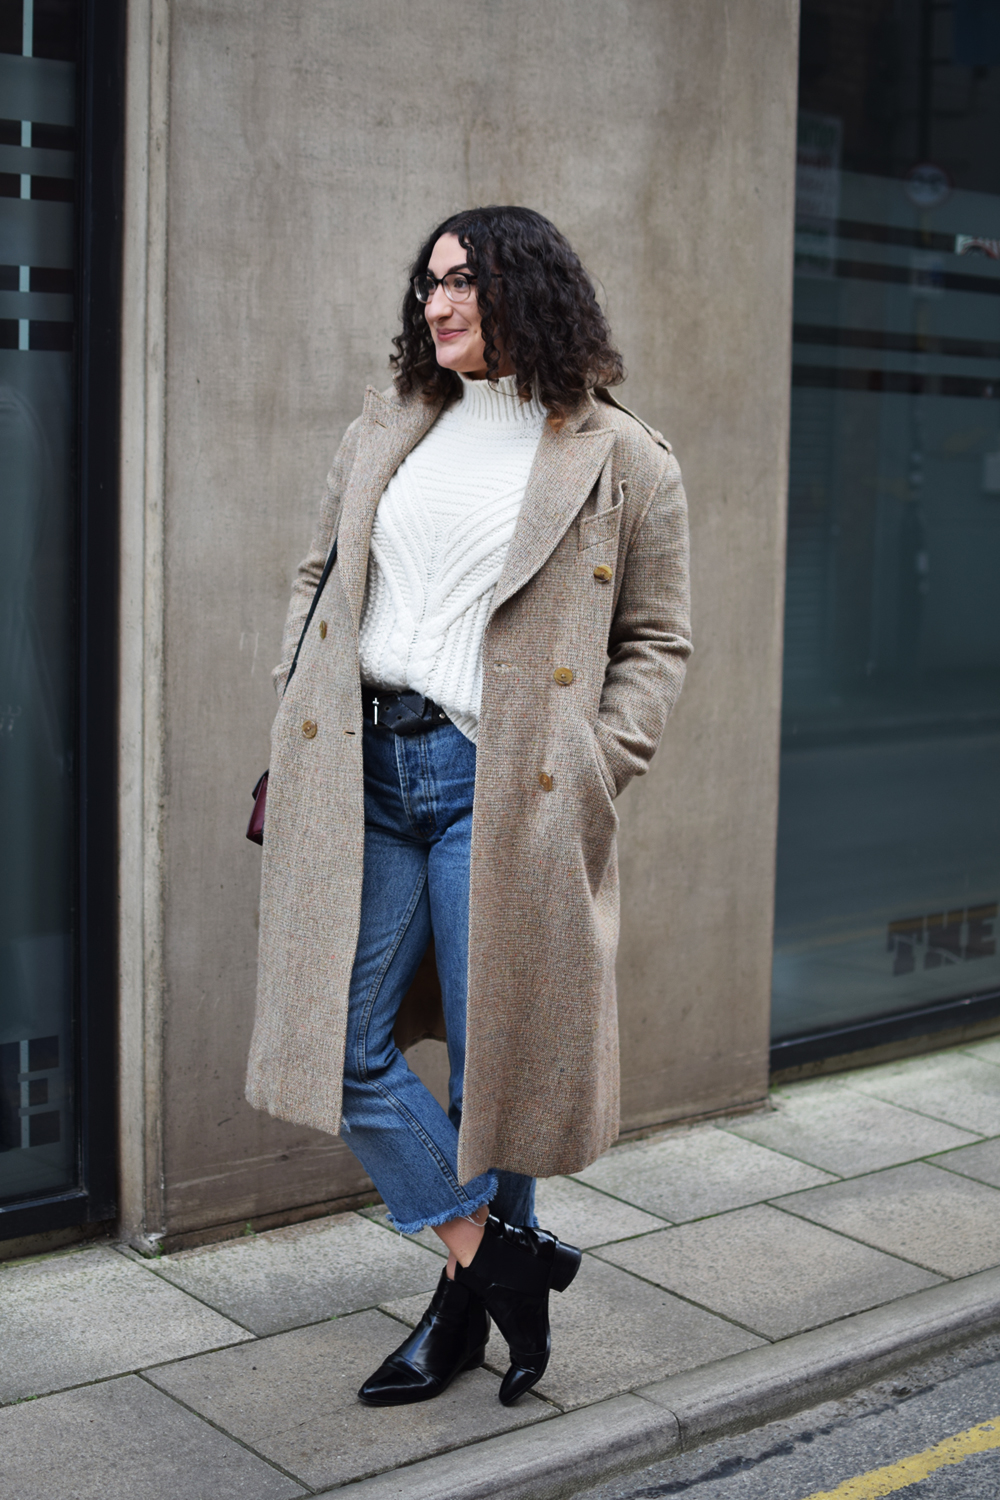 cosy winter knits and denim